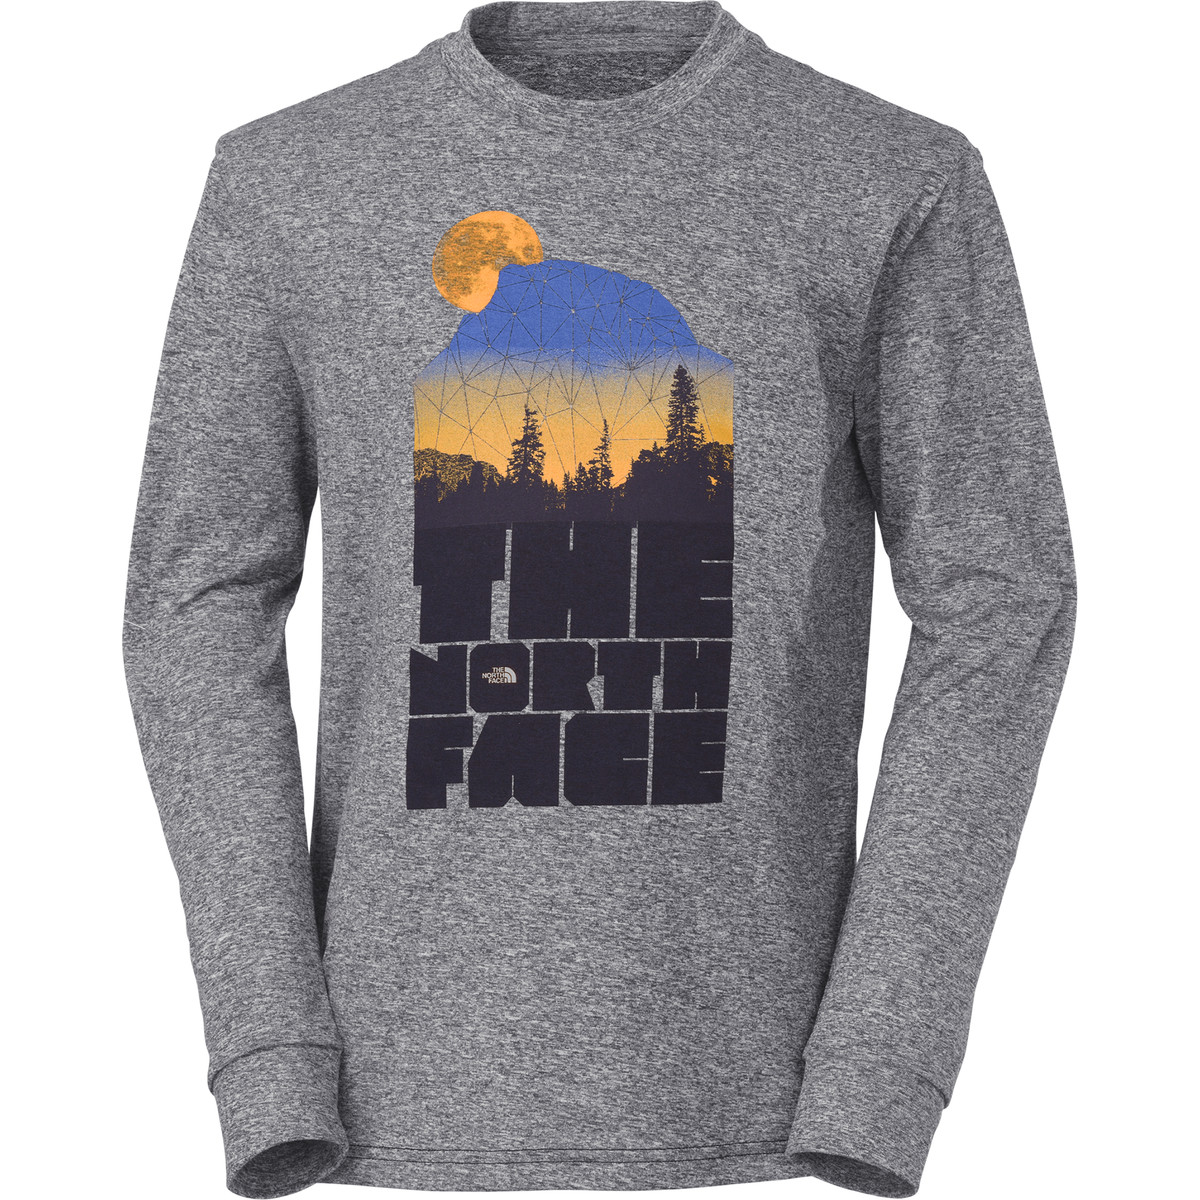 The North Face Markhor Hike Long-Sleeve Tee